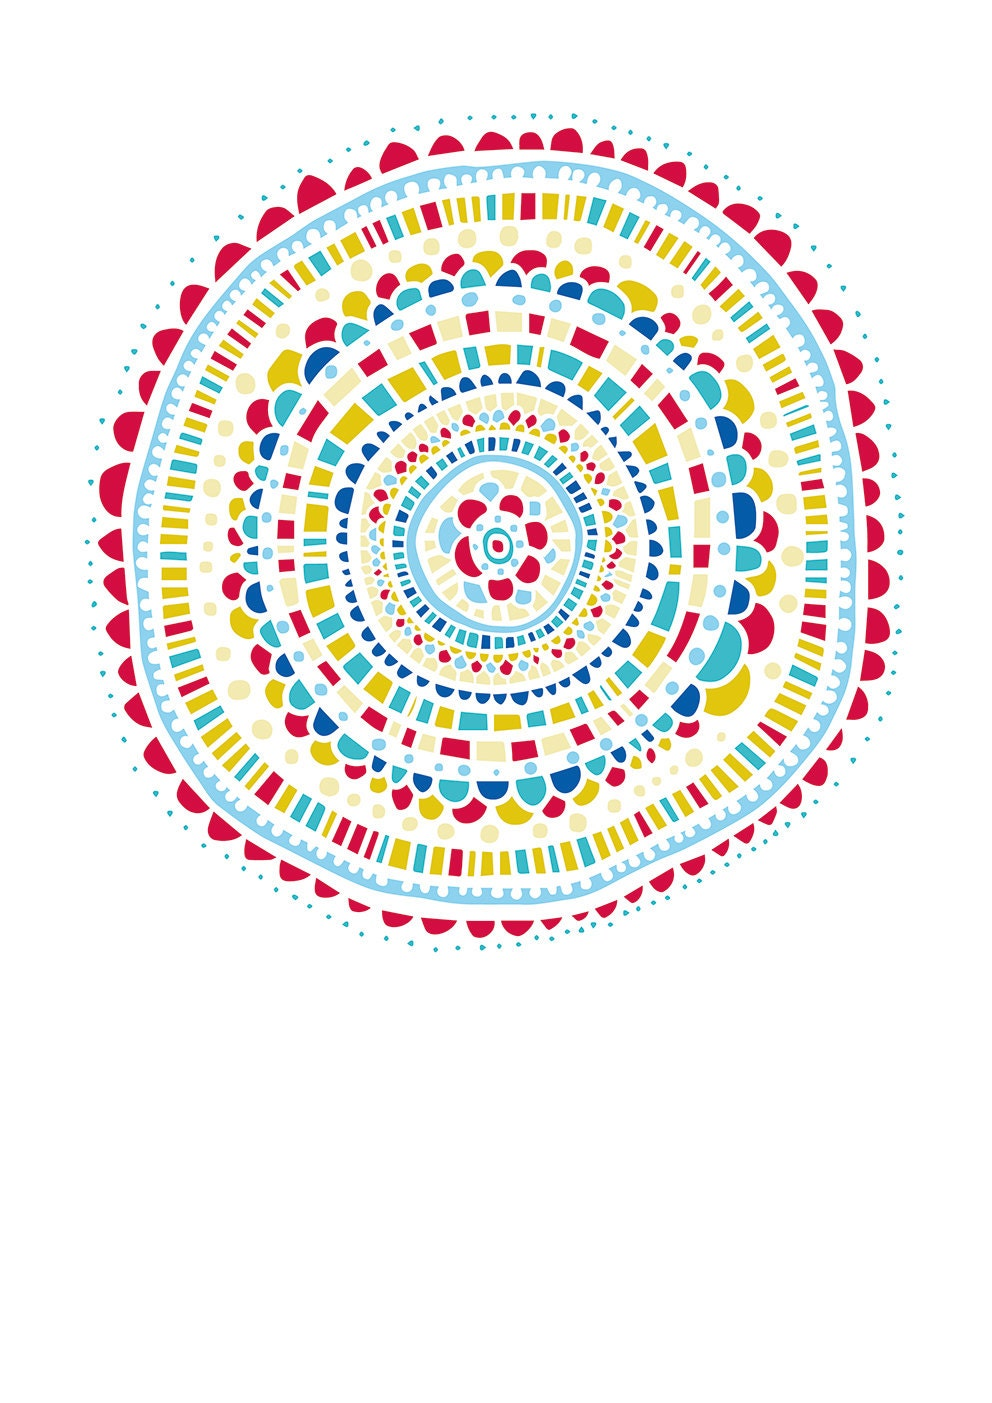 Hand Drawn Mandala Design, Instant Digital Download, Digital Clip Art File, Wall Art, jpeg/png, Blue, Red, Yellow, Aqua - HeartBoundStore